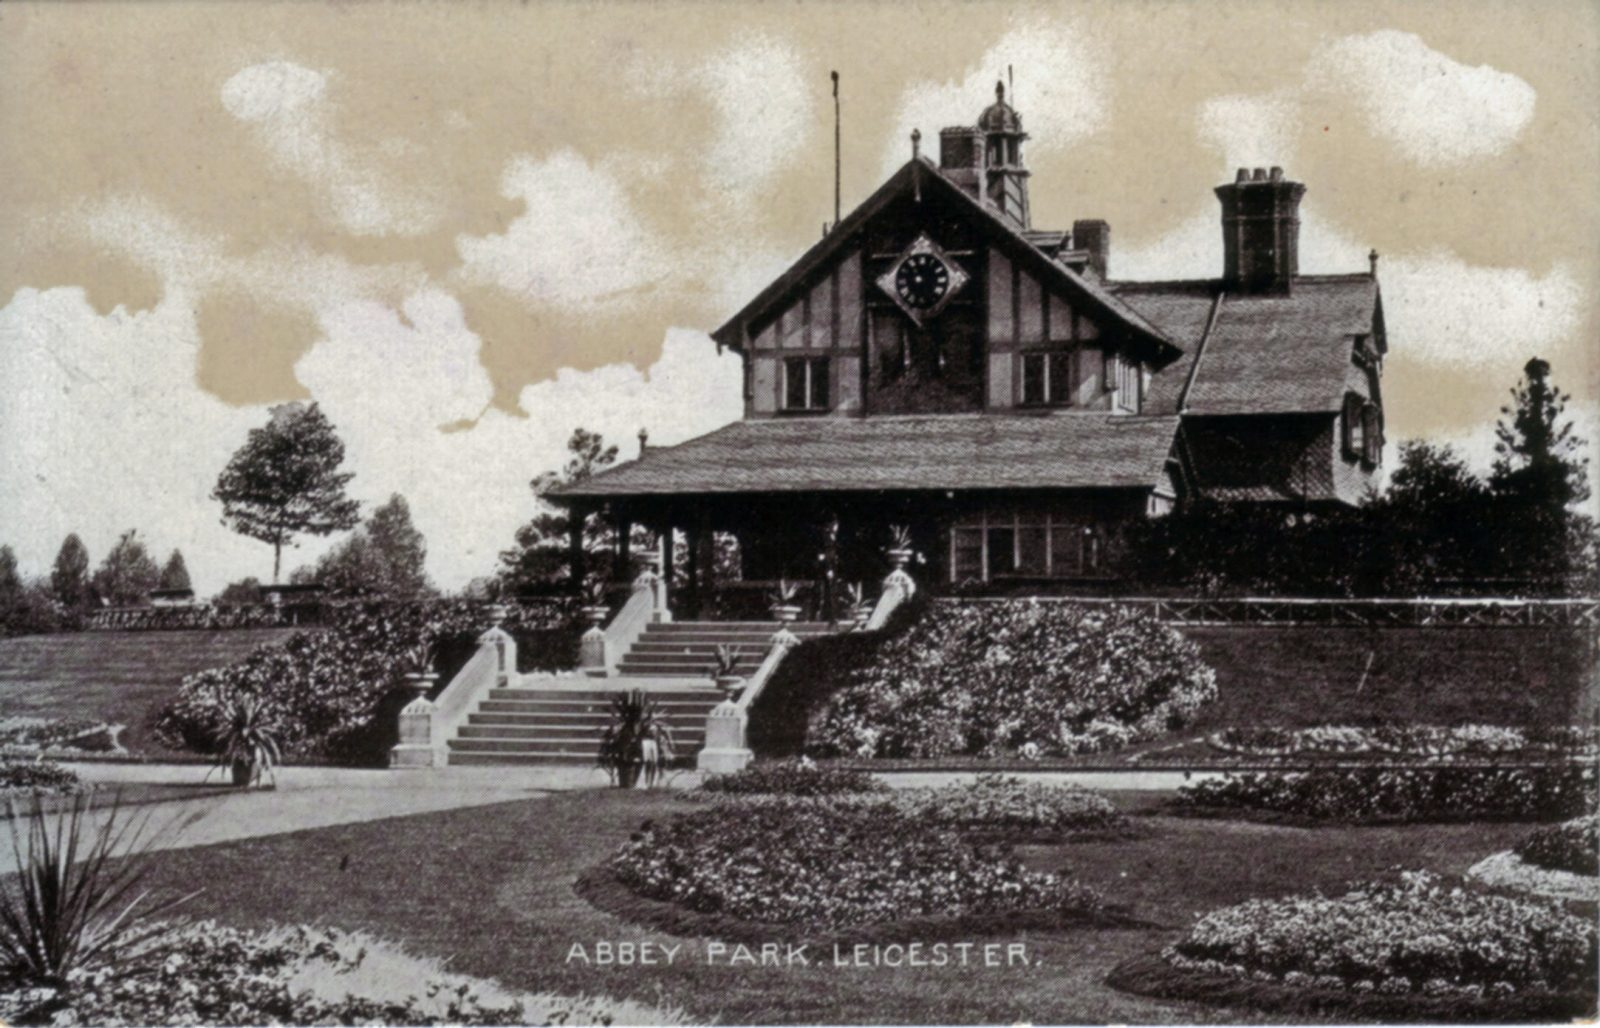 Abbey Park, Leicester. Undated: The Pavilion and carpet bedding. Similar to view to 1052 but earlier - trees smaller. (File:1051)